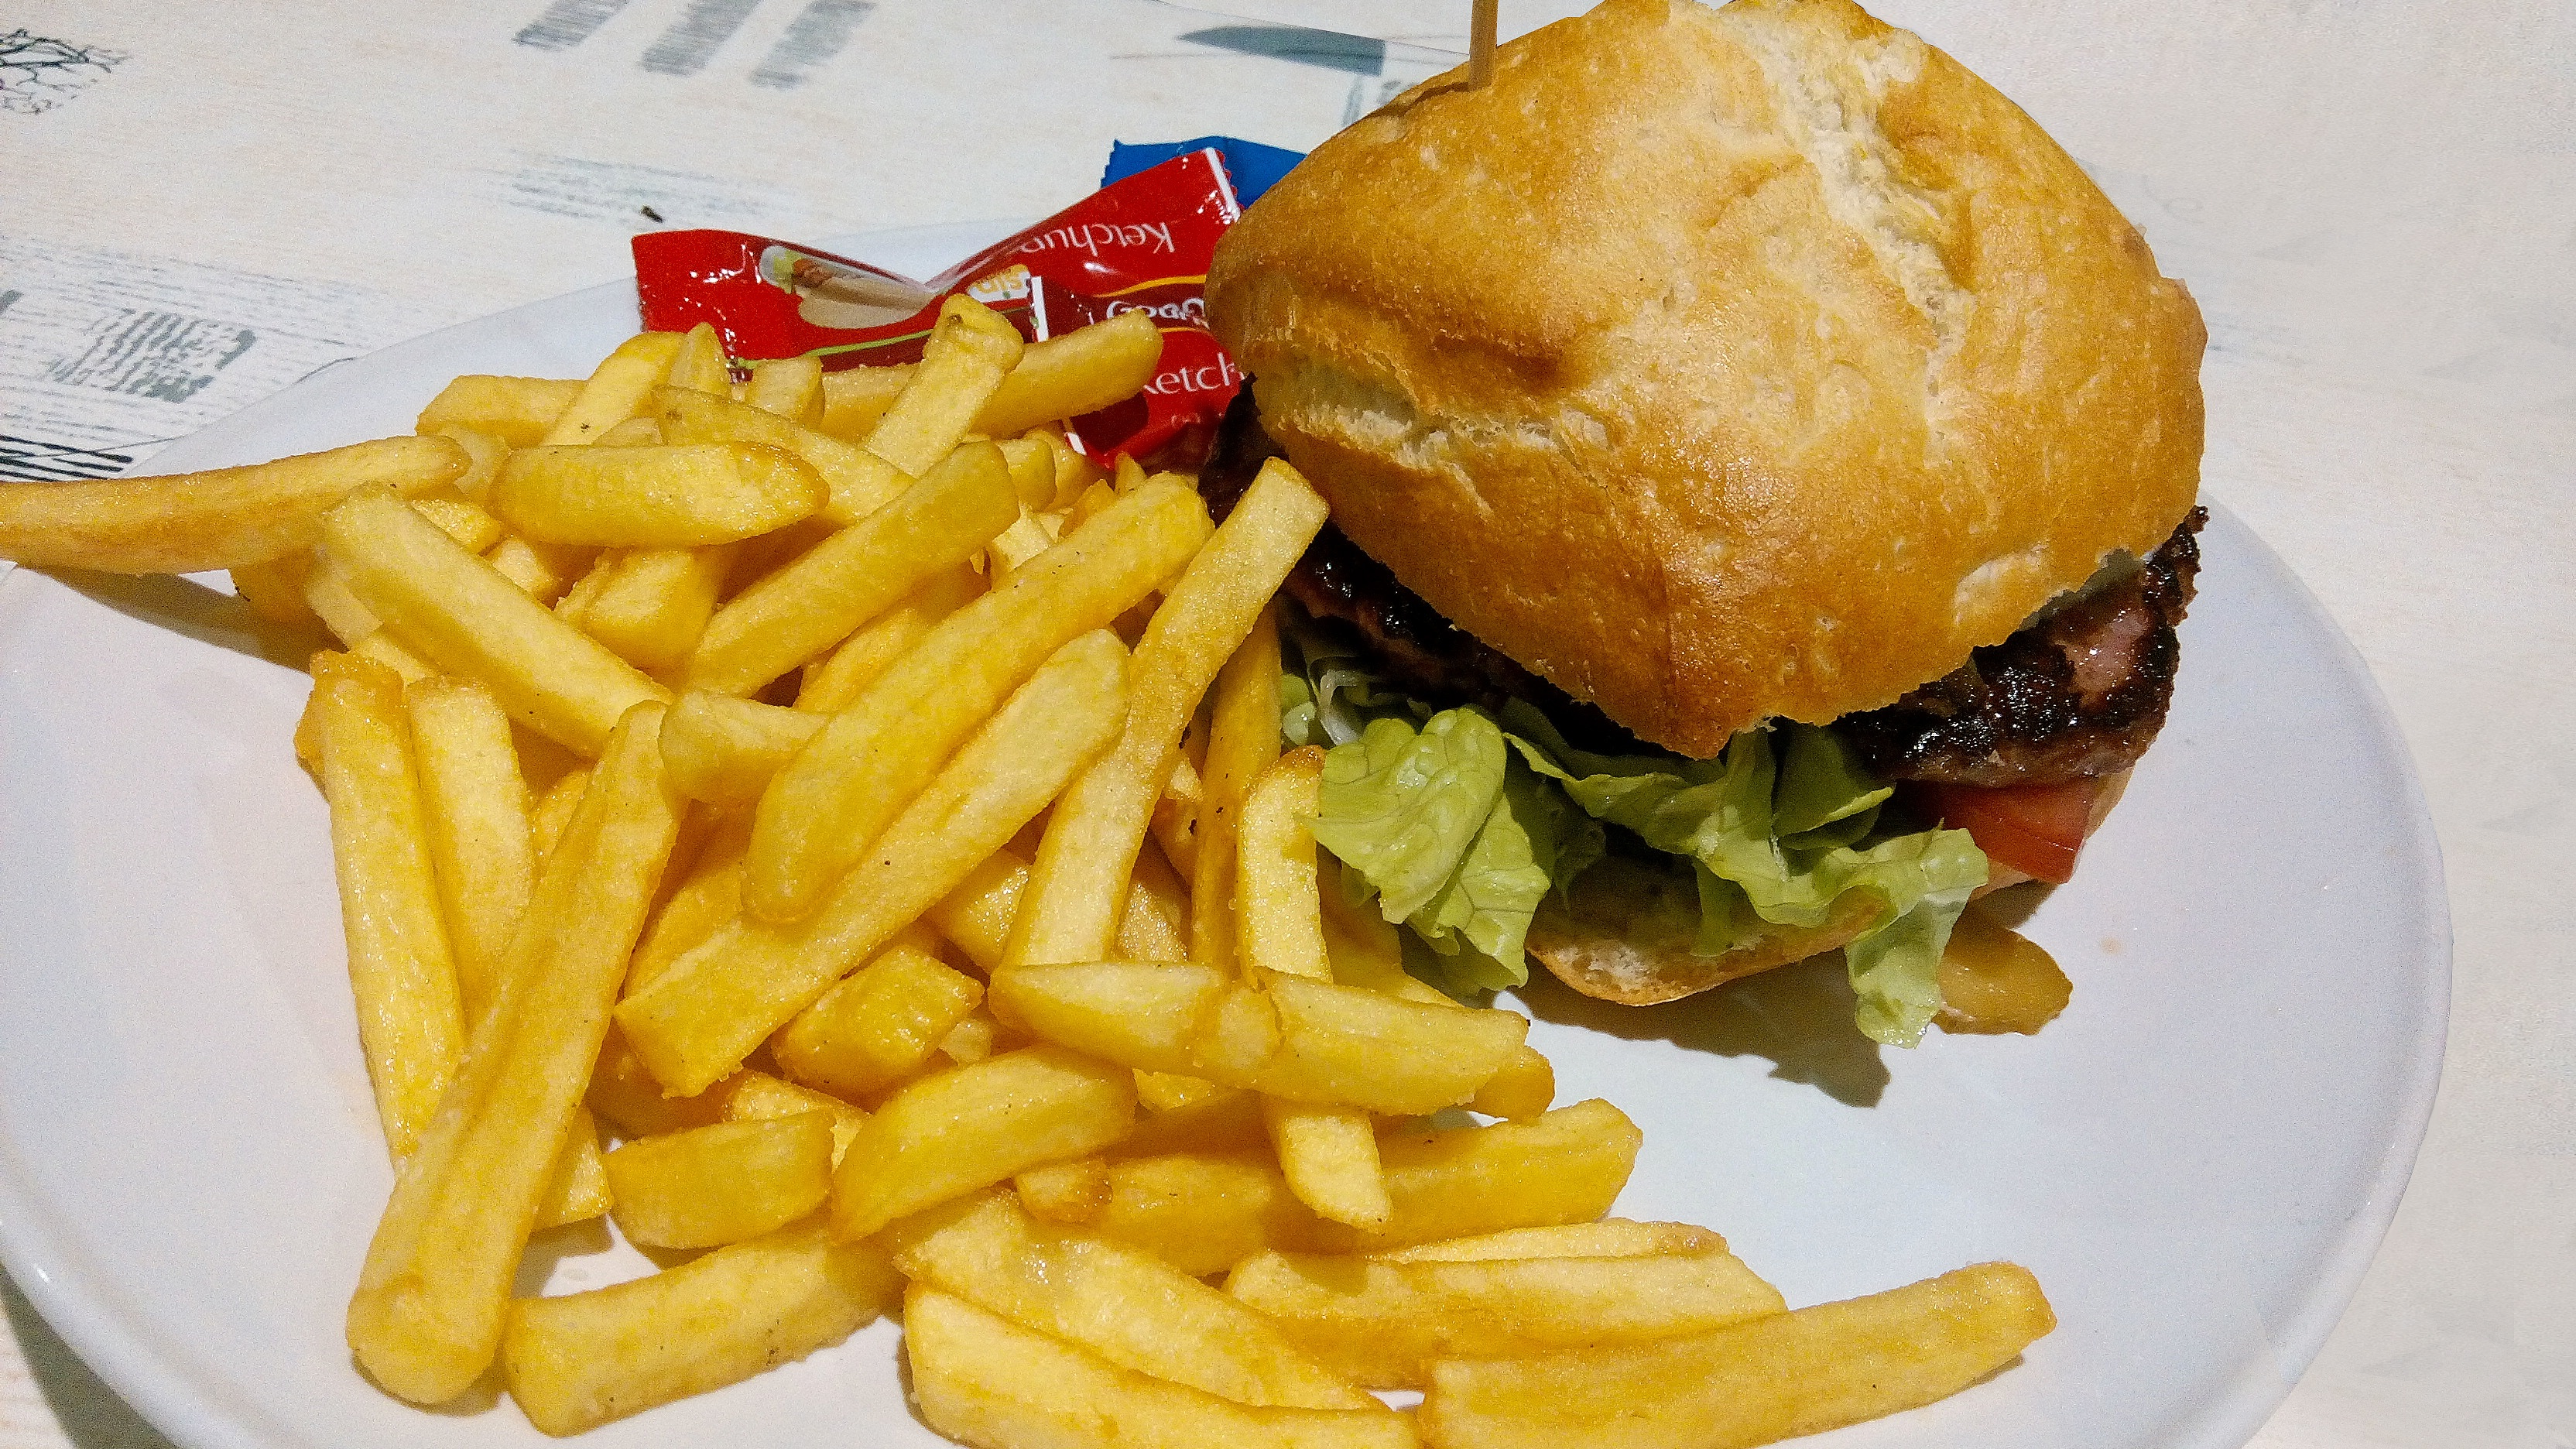 avoiding fast food 5 steps to avoid fast food 09/12/2014 frugal , homemaking , meal plan , meal planning 5 , avoid , fast , food , steps , trap aspired living you know the feeling, you are on your way and it's way after 6 pm and everyone is grumbling and hungry.